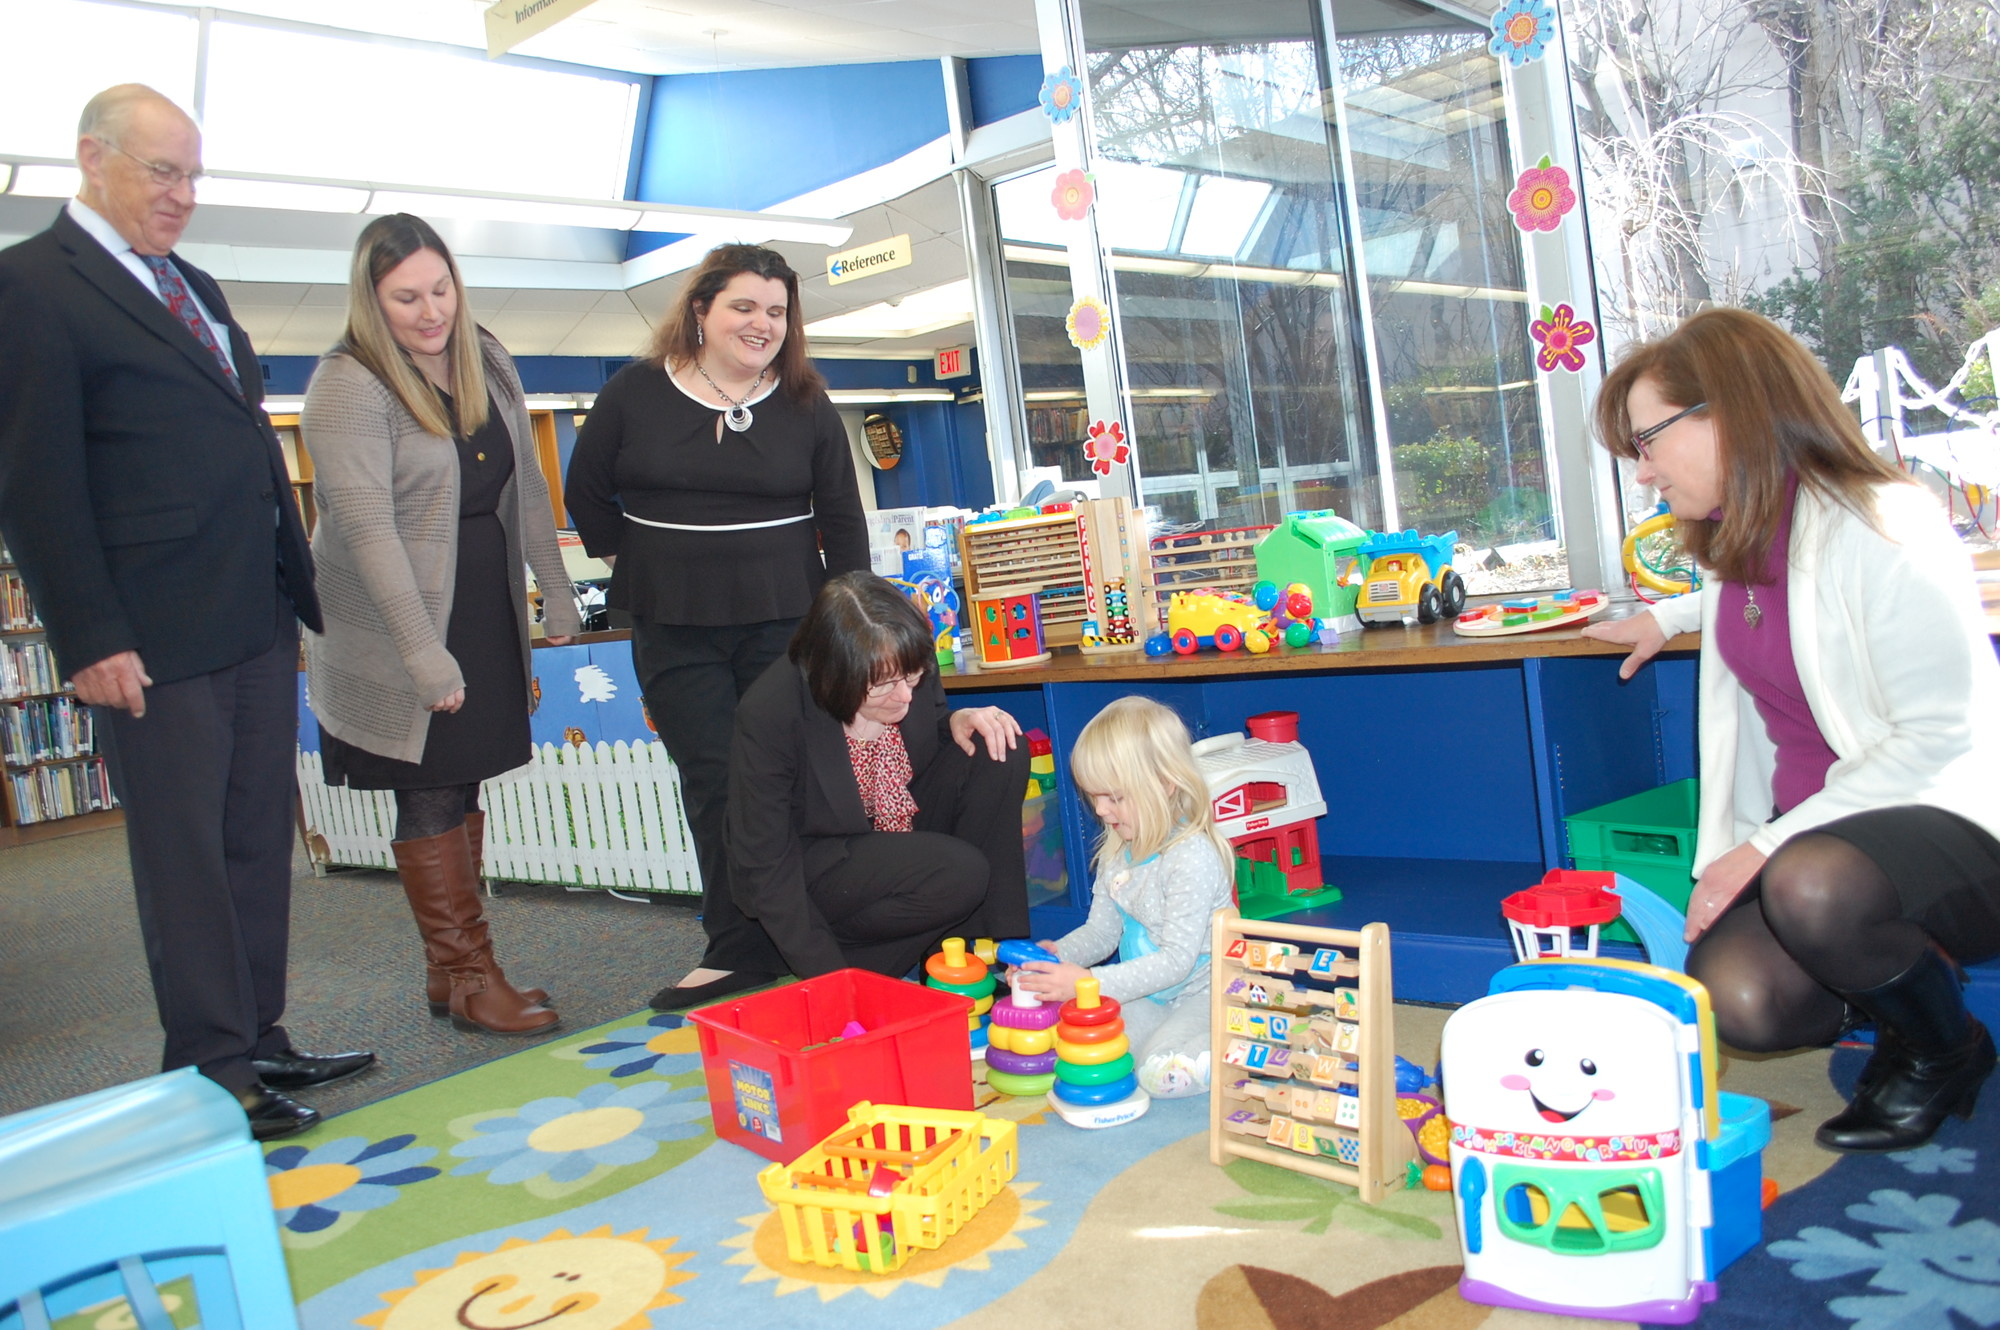 Assemblyman David McDonough, far left, Family Place librarians Michelle Kenney and Kristen Todd-Wurm, Wantagh Library Director Maggie Marino and children's librarian Susan Finck watched 4-year-old Arianna Grout play with some of the new toys.